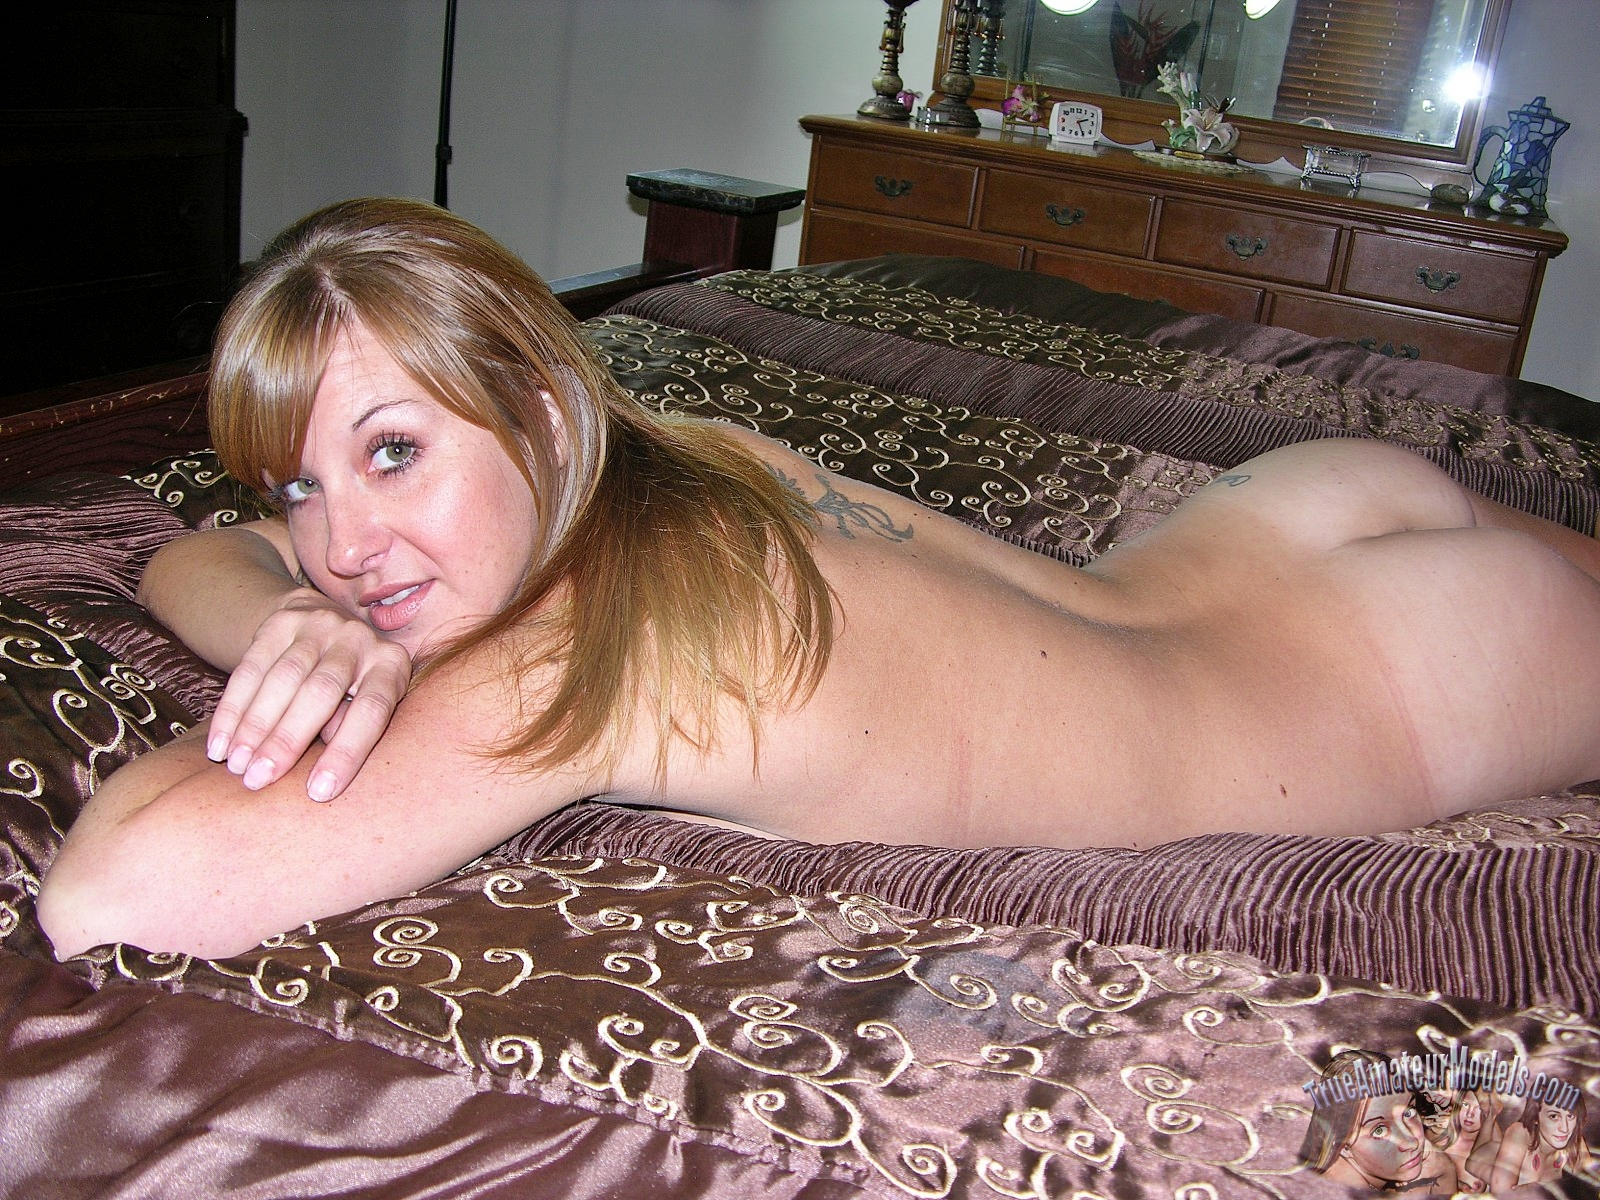 Opinion instant nude amateur pics